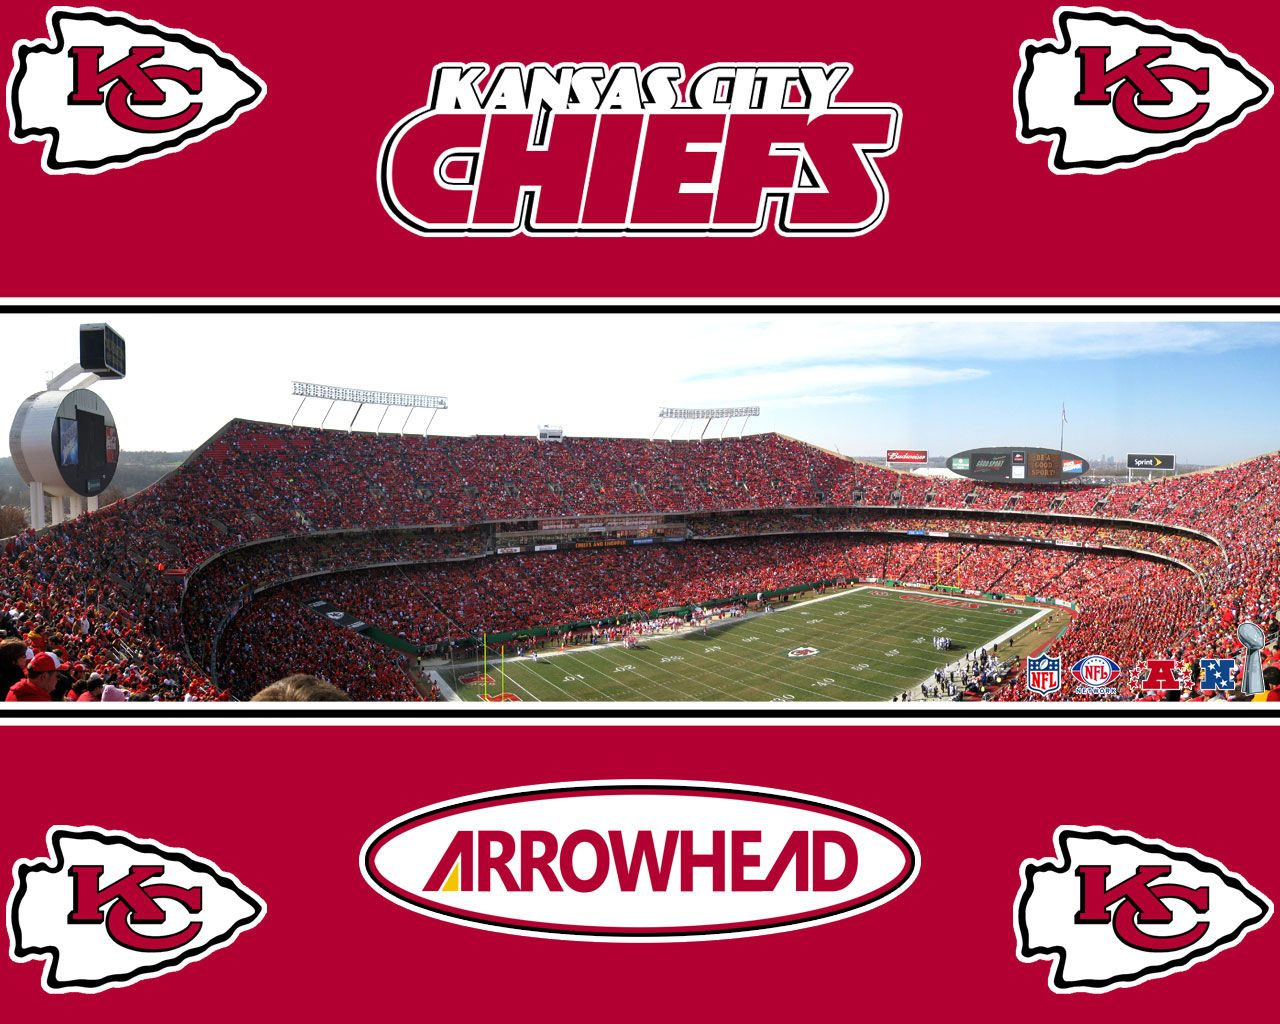 kansas city chiefs free pictures /jFKmf3moN4/s1600